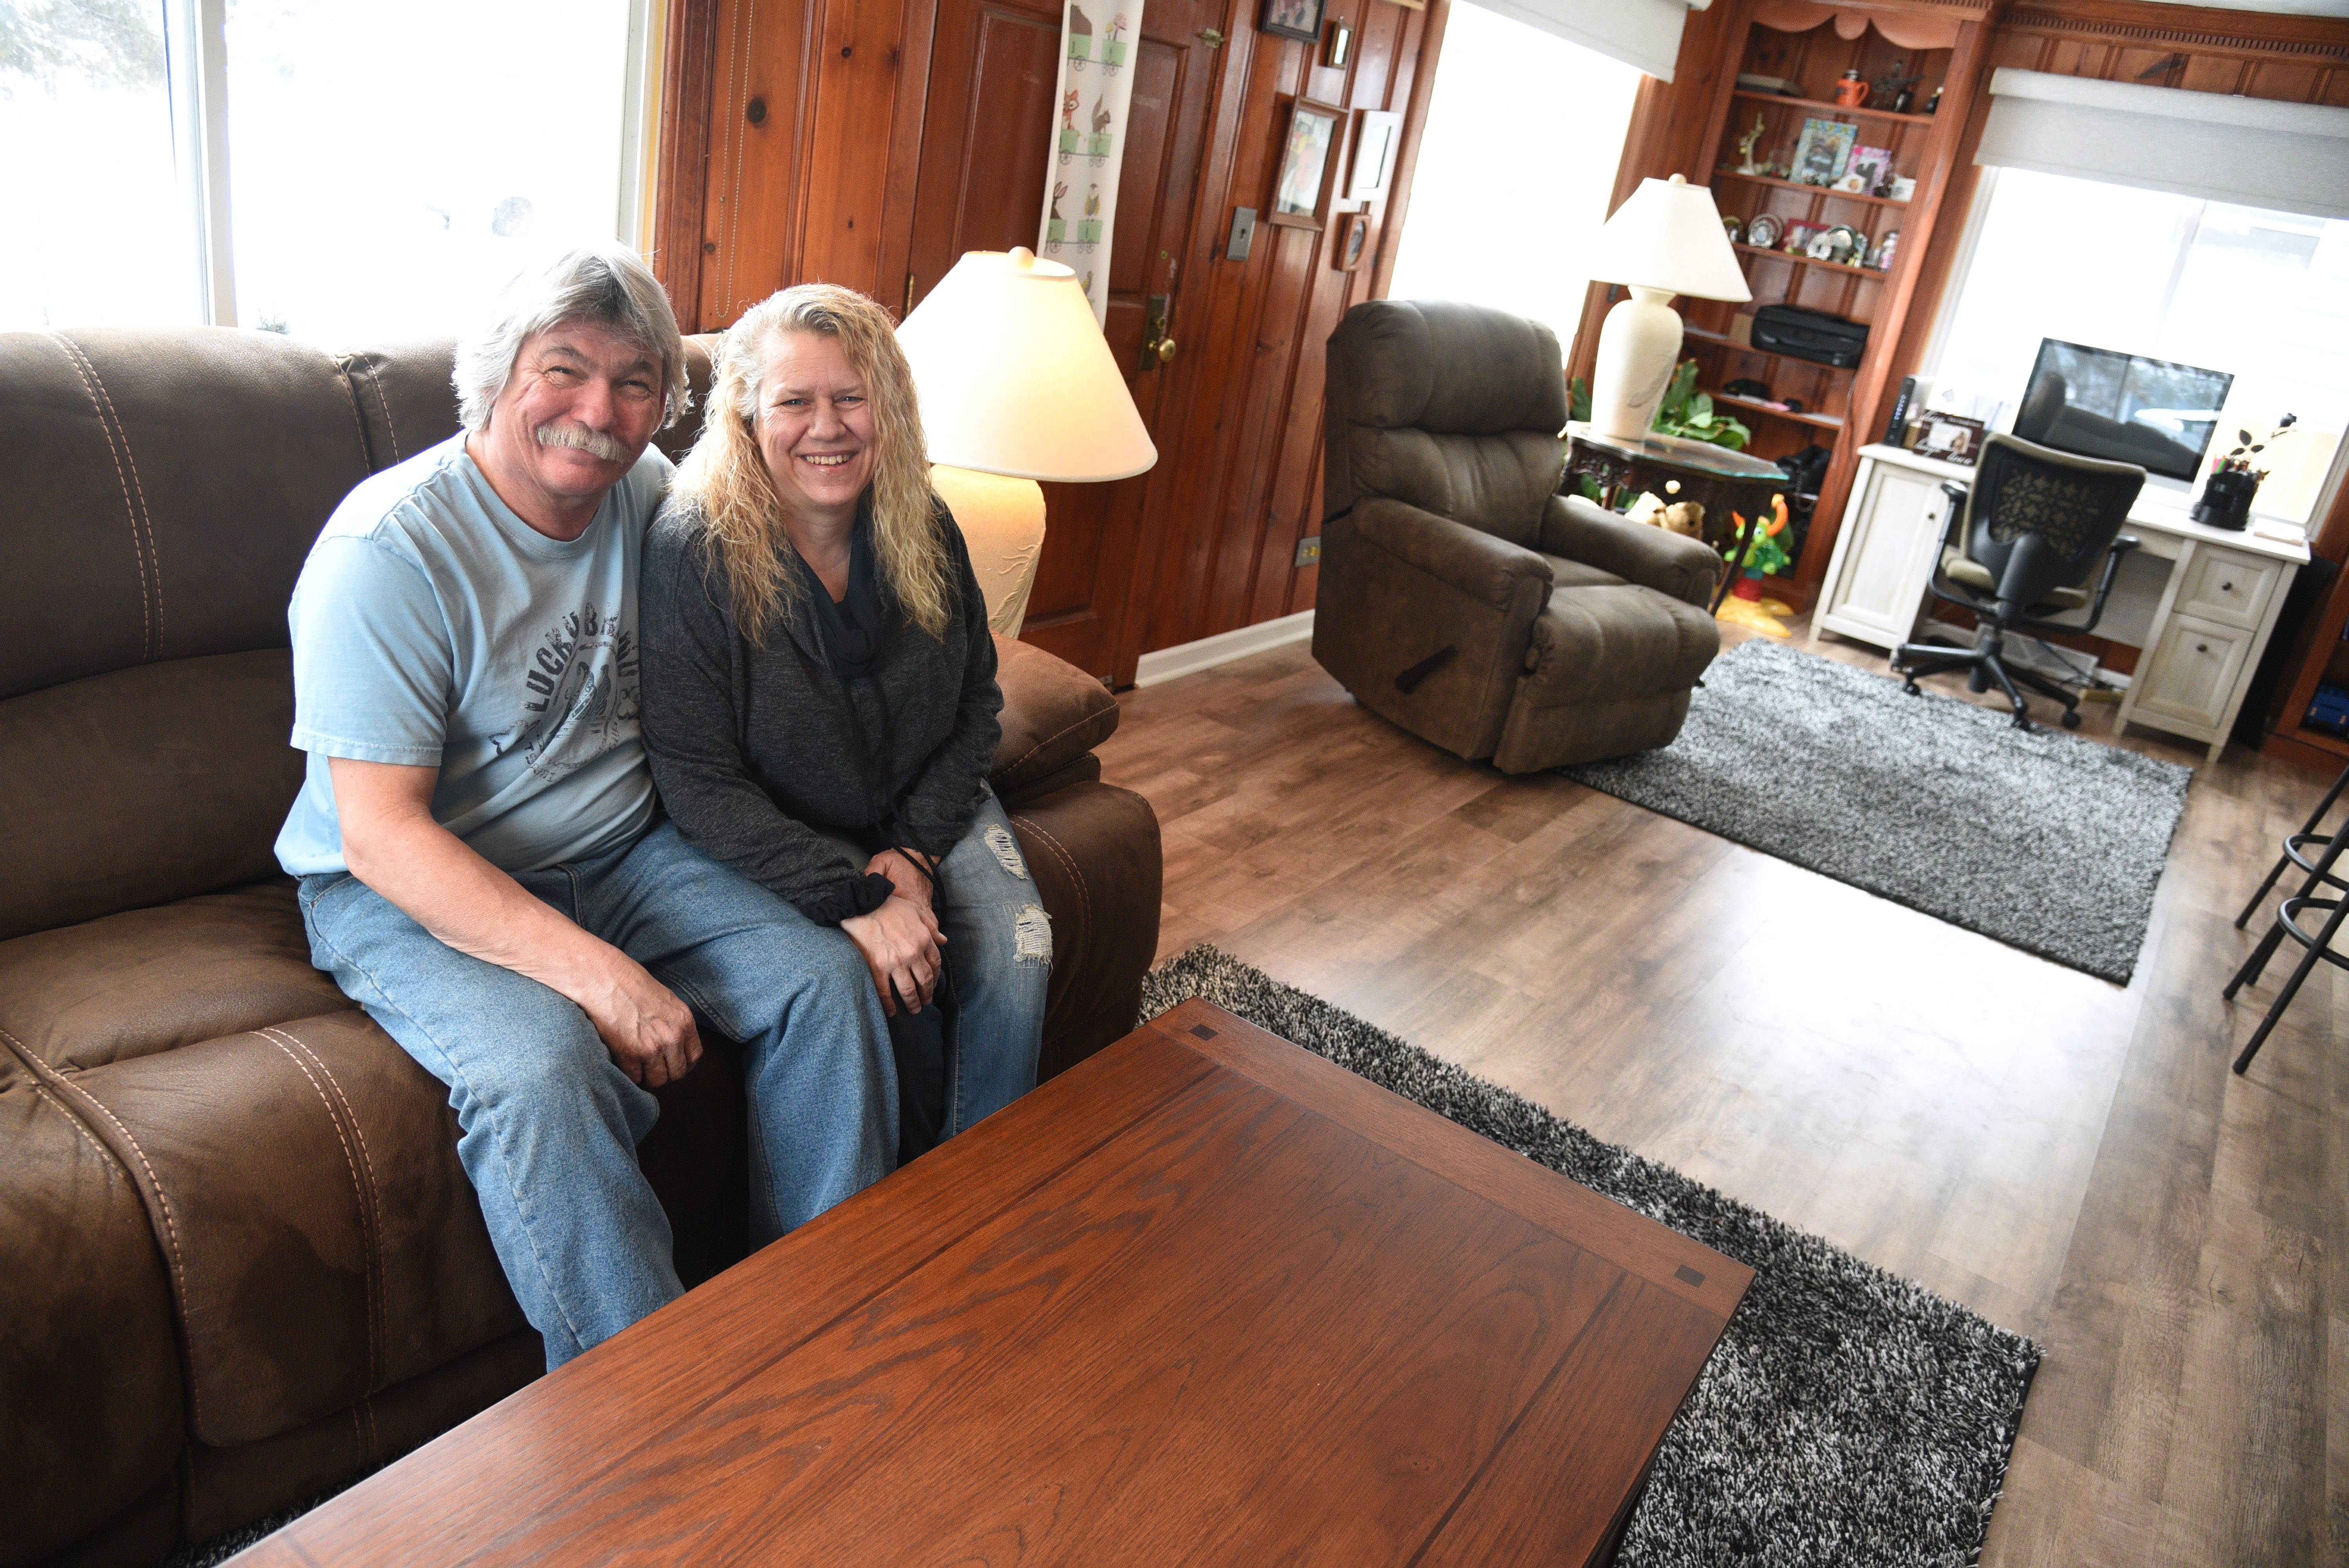 Harry and Amy Walters of Round Lake won a Daily Herald Room For Living makeover package, which included furniture, flooring and window treatments.